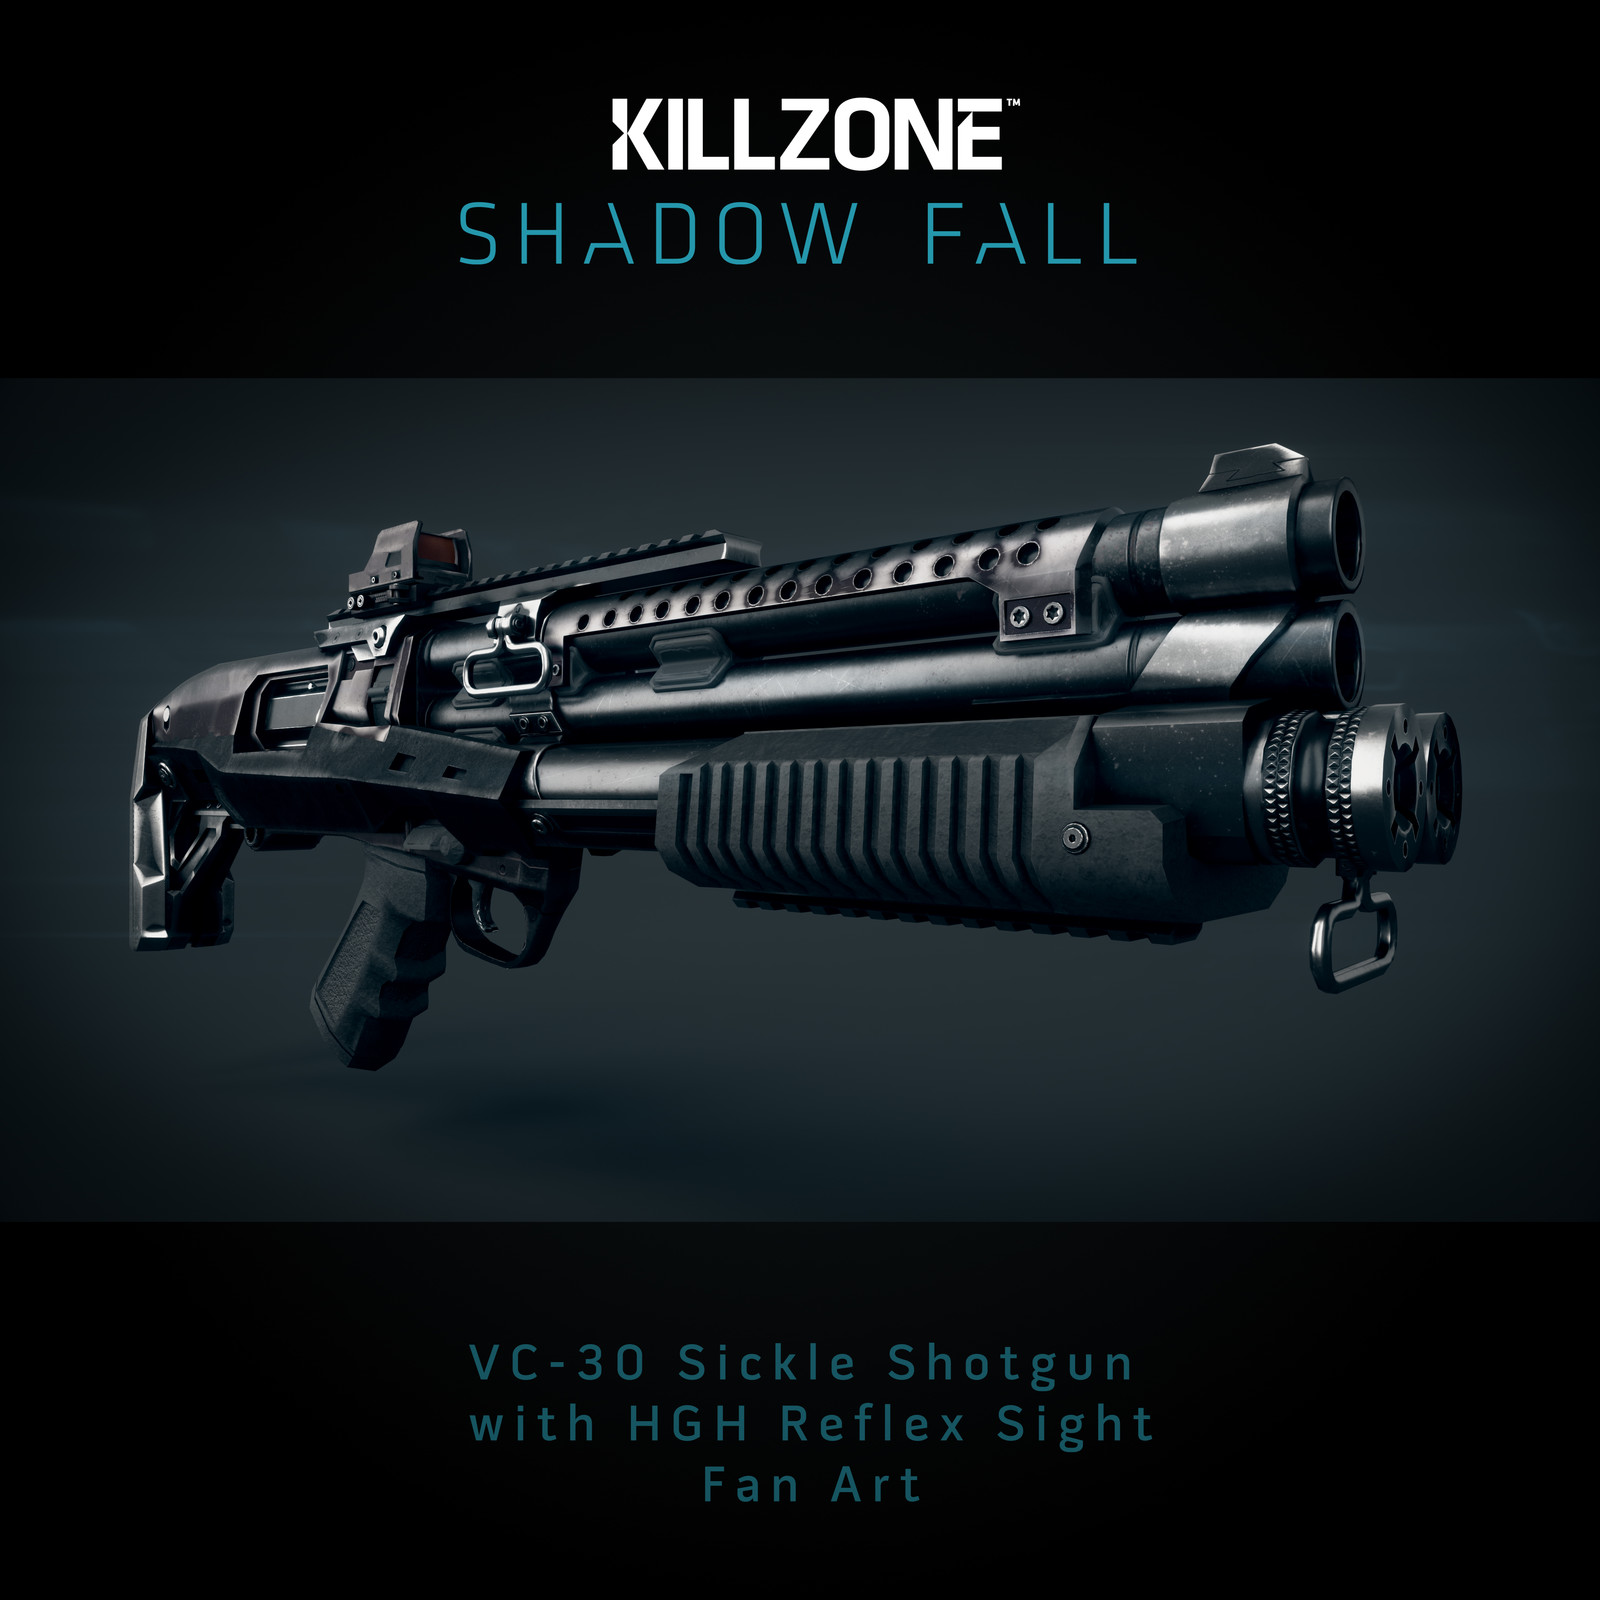 VC-30 Sickle Shotgun   //  Killzone Shadow Fall  -  Fan Art